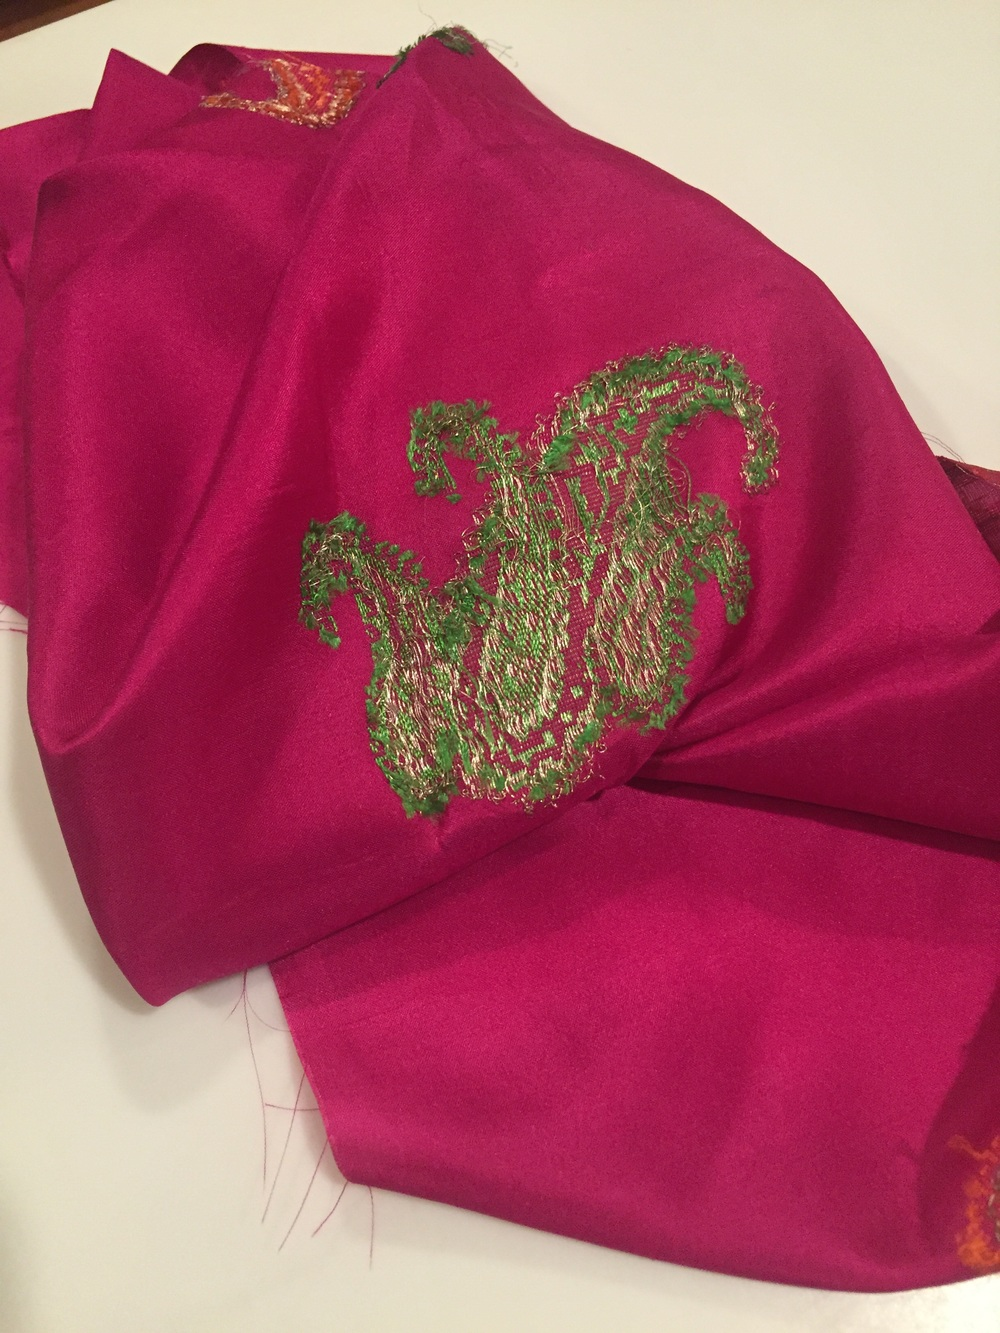 This is a recycled Varanasi silk Sari.  This beautiful sari is a vibrant pink color.  It is very lovely and smells like the Pacha soap.